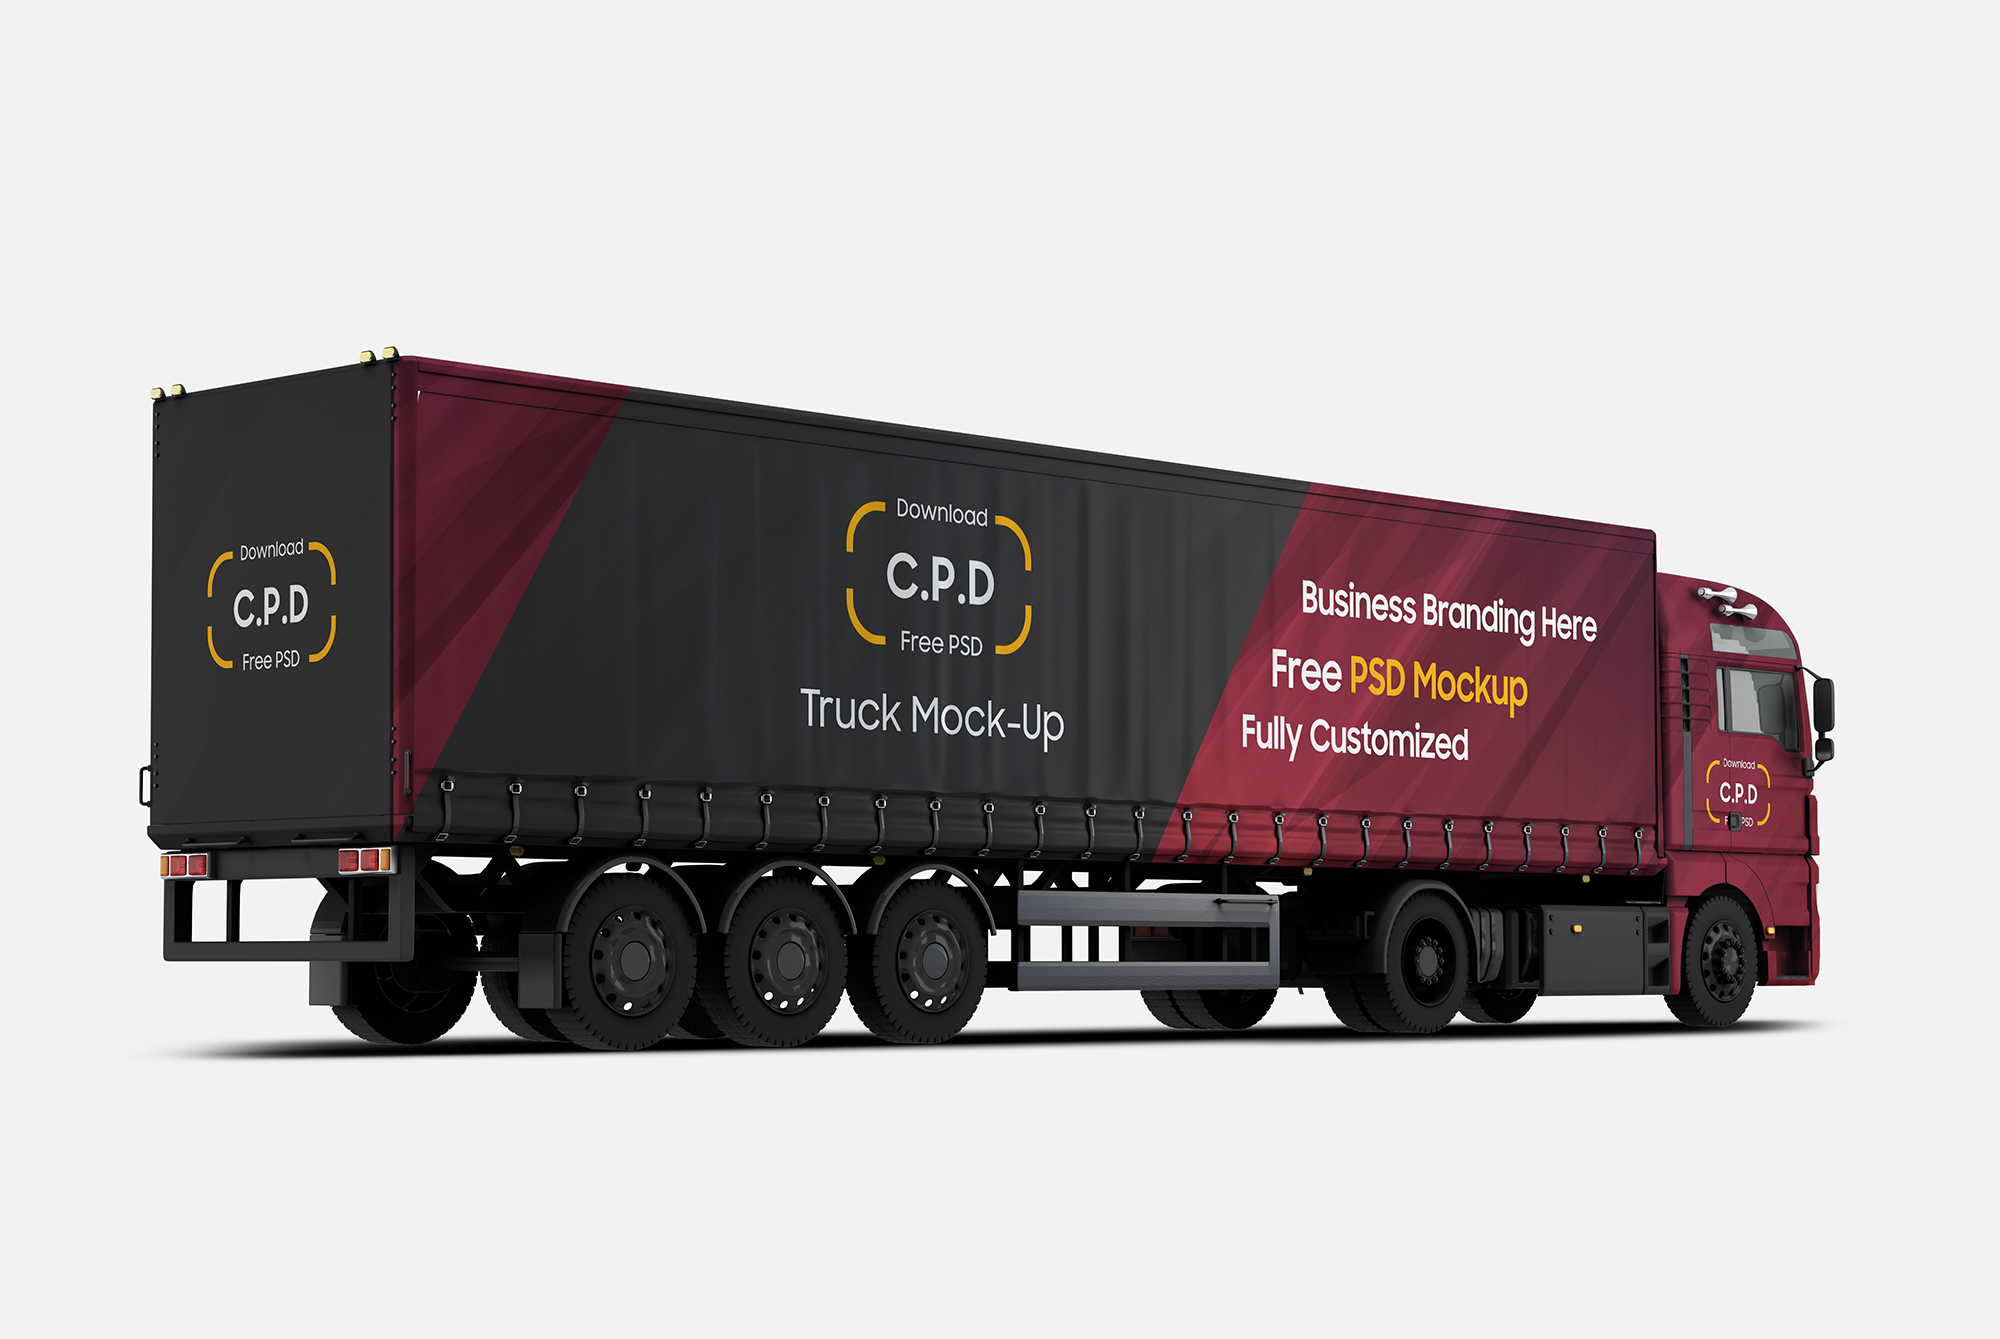 Truck Mockup Right Back Side View Free PSD